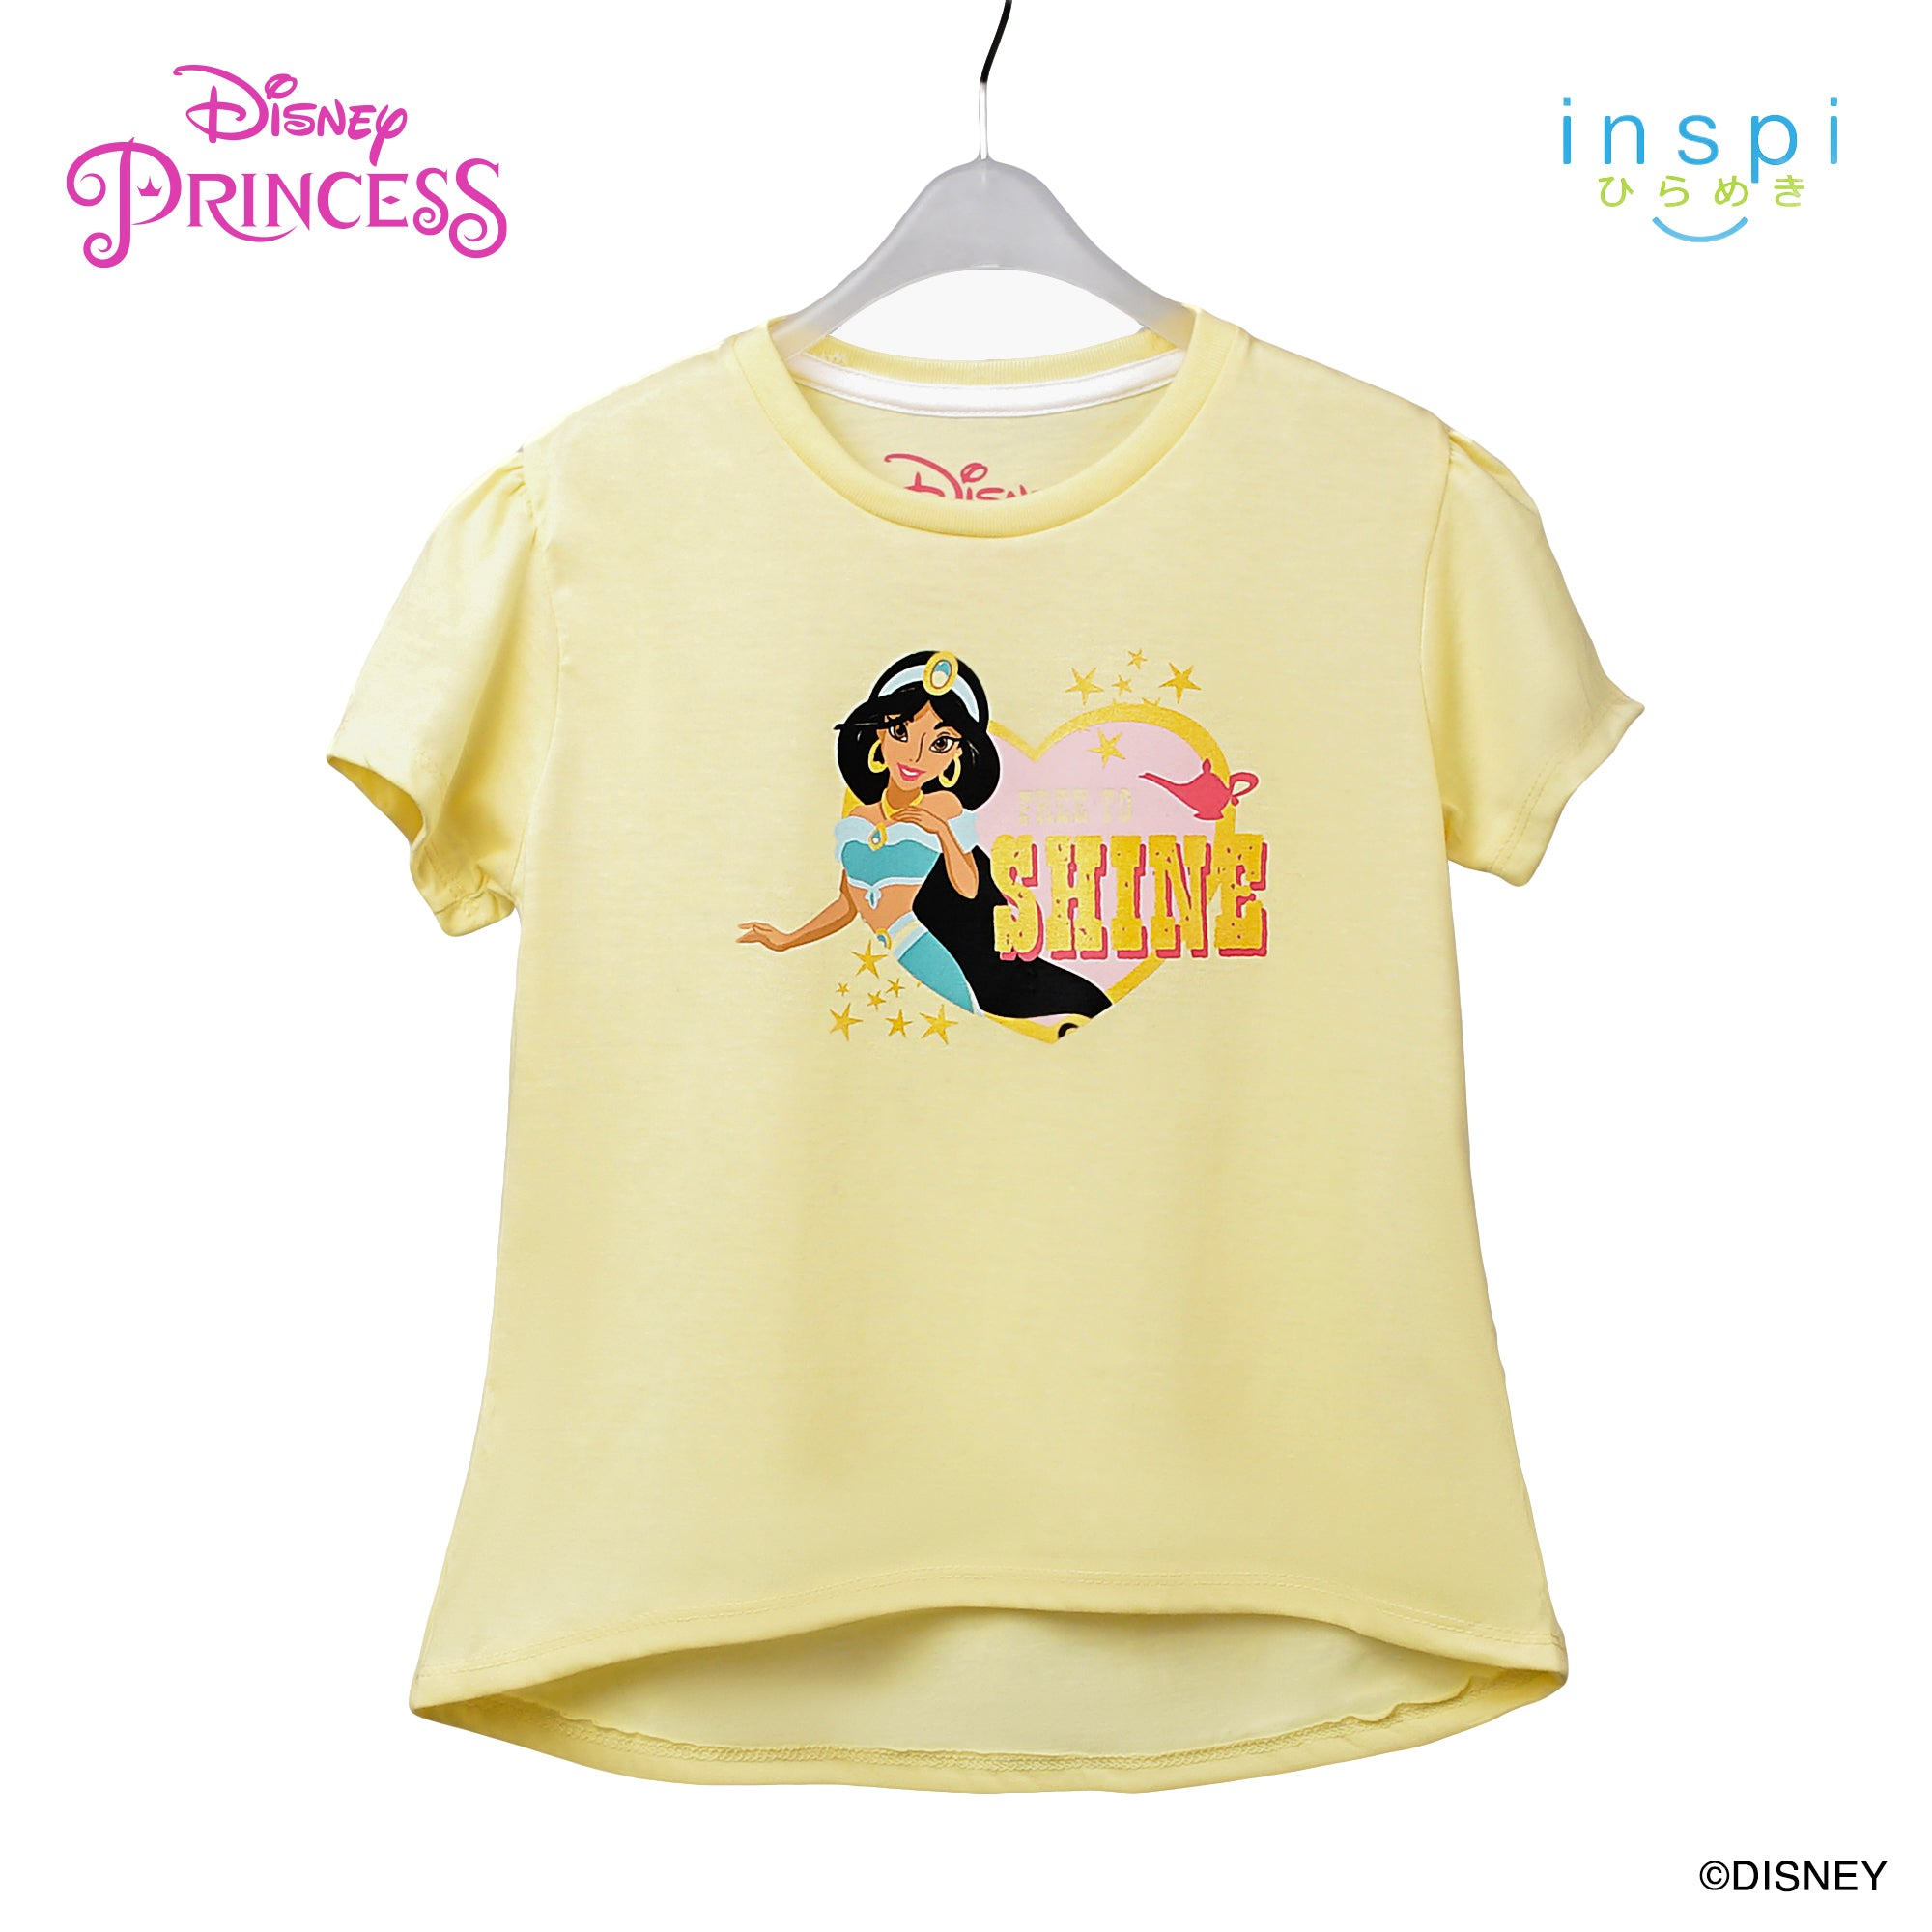 Disney Princess Jasmine Free to Shine Tshirt in Baby Yellow for Girls Inspi Shirt